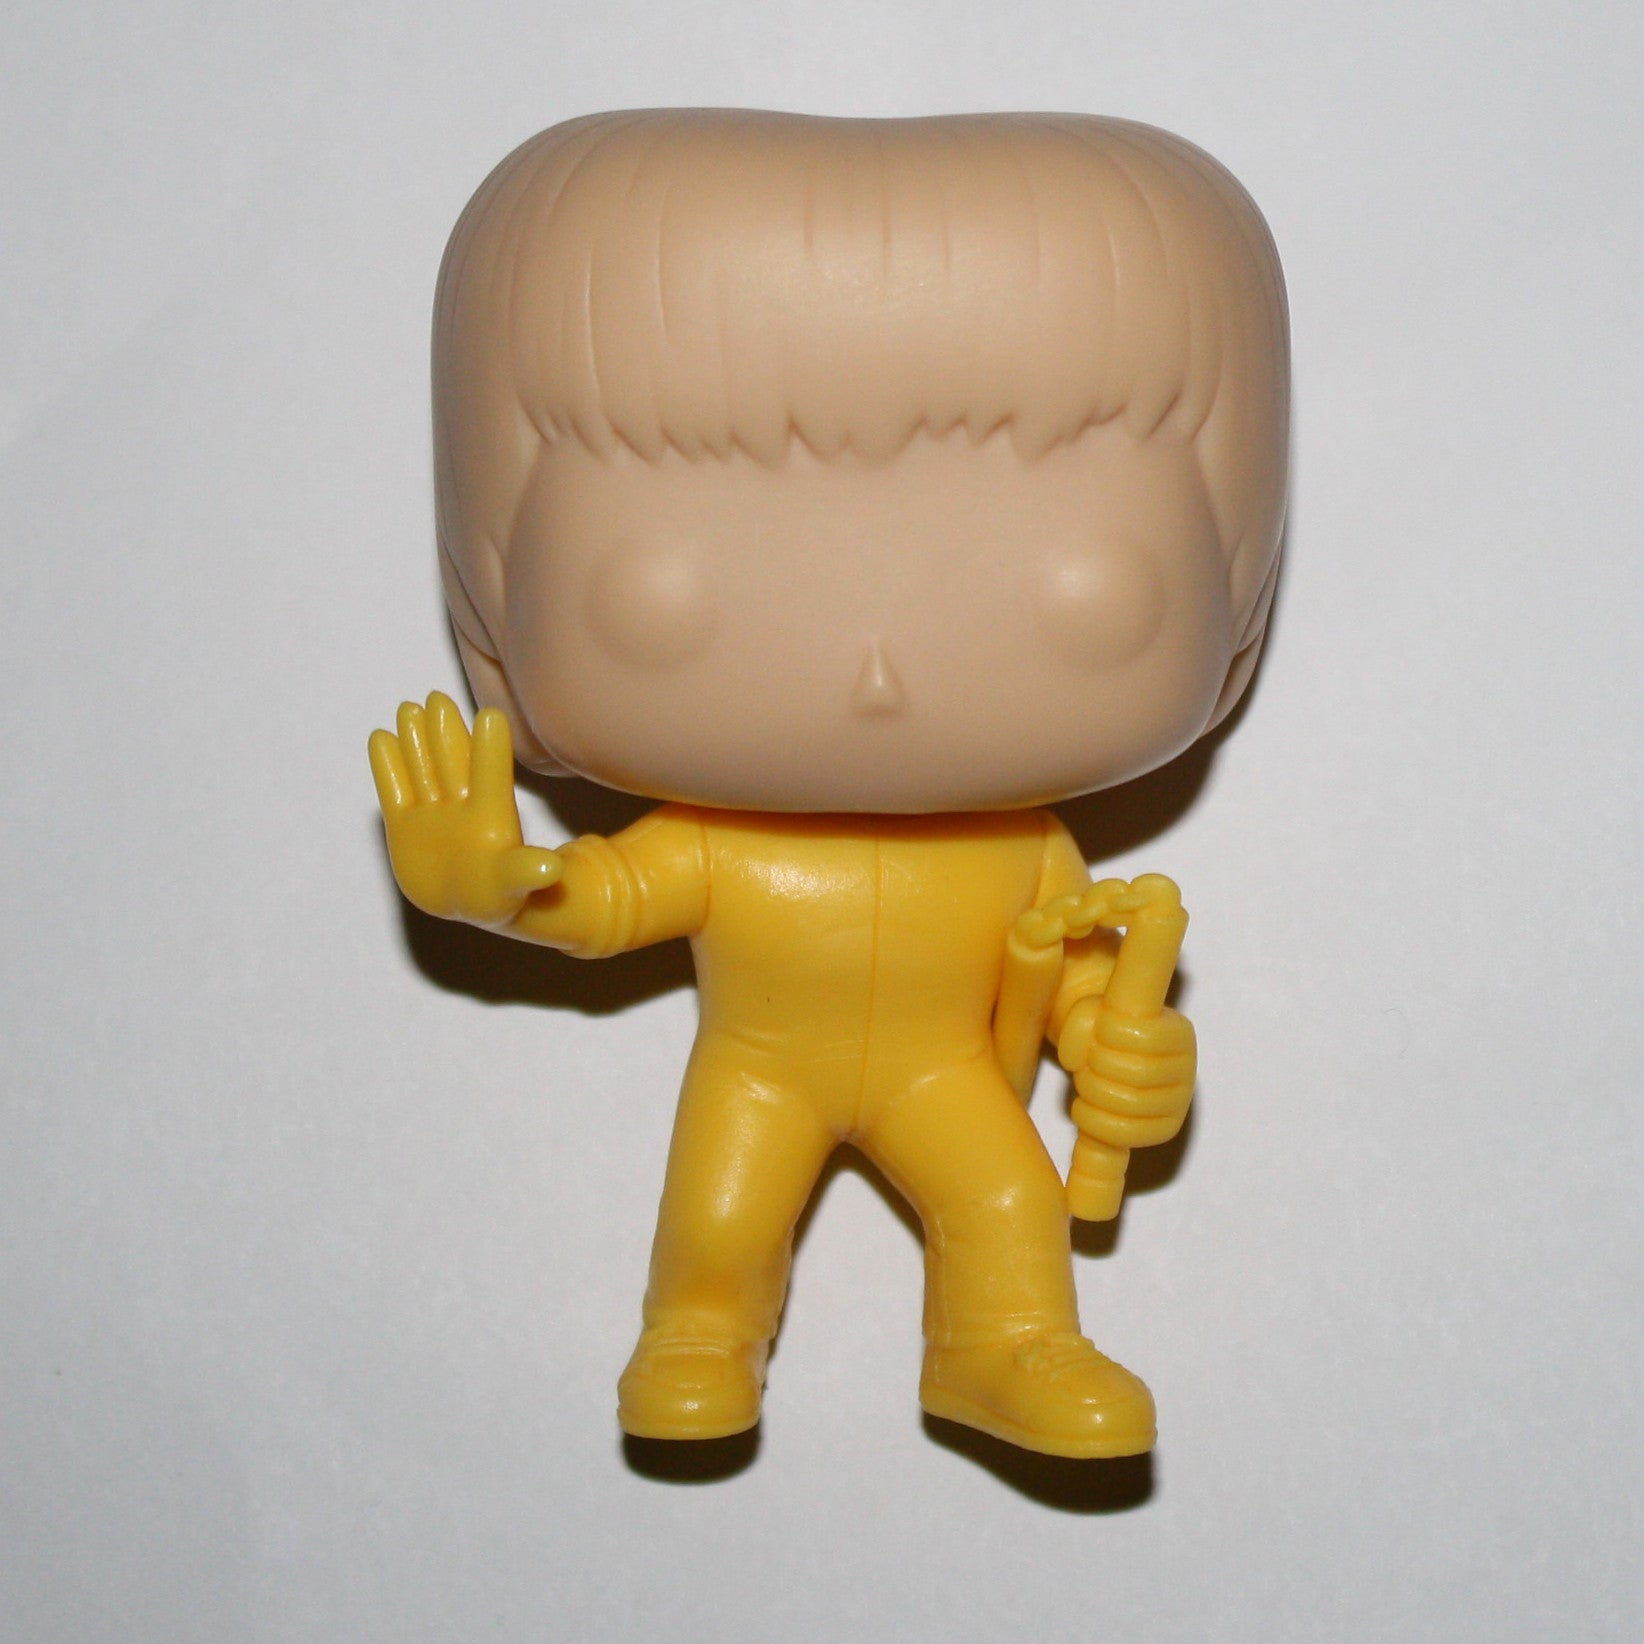 Bruce Lee YELLOW [Game of Death] Proto - Fugitive Toys